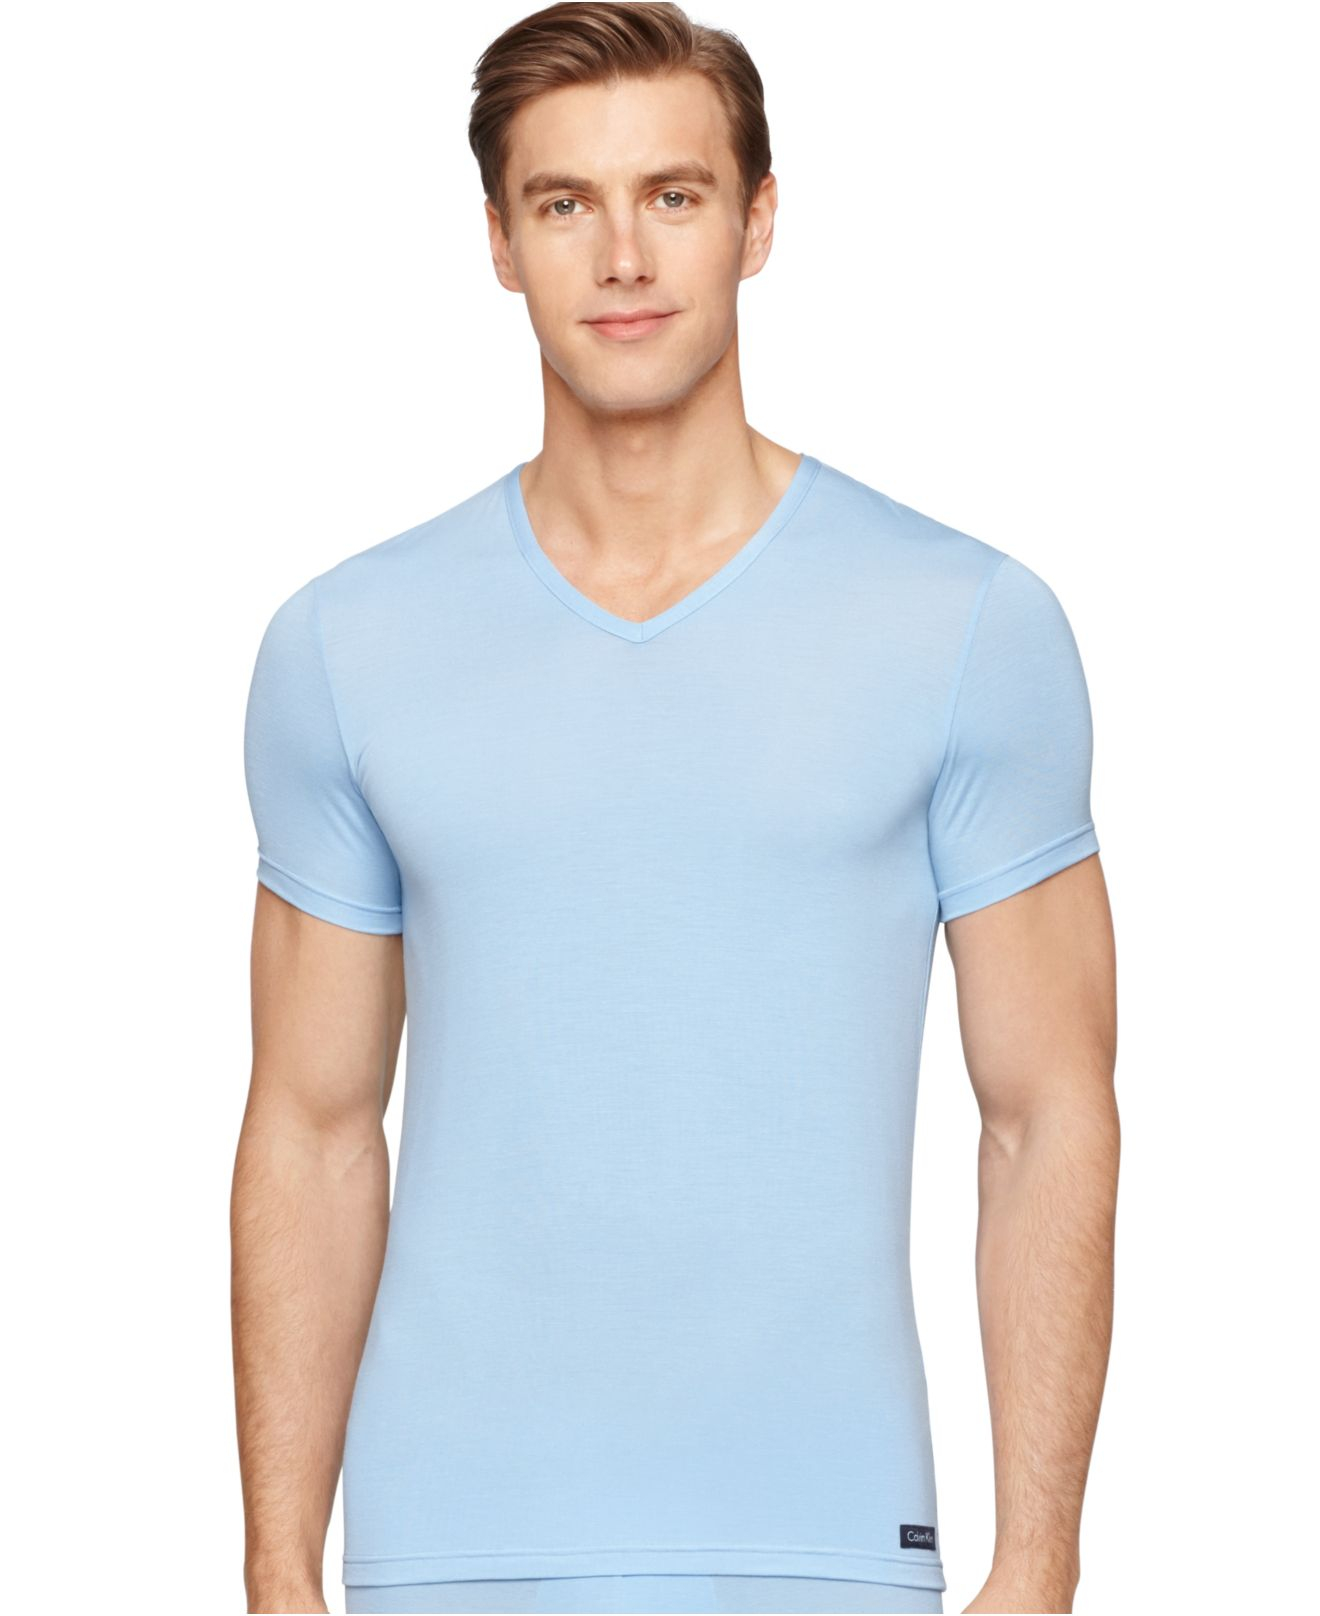 Calvin klein micro modal v neck t shirt u5576 in blue for for Modal t shirts mens